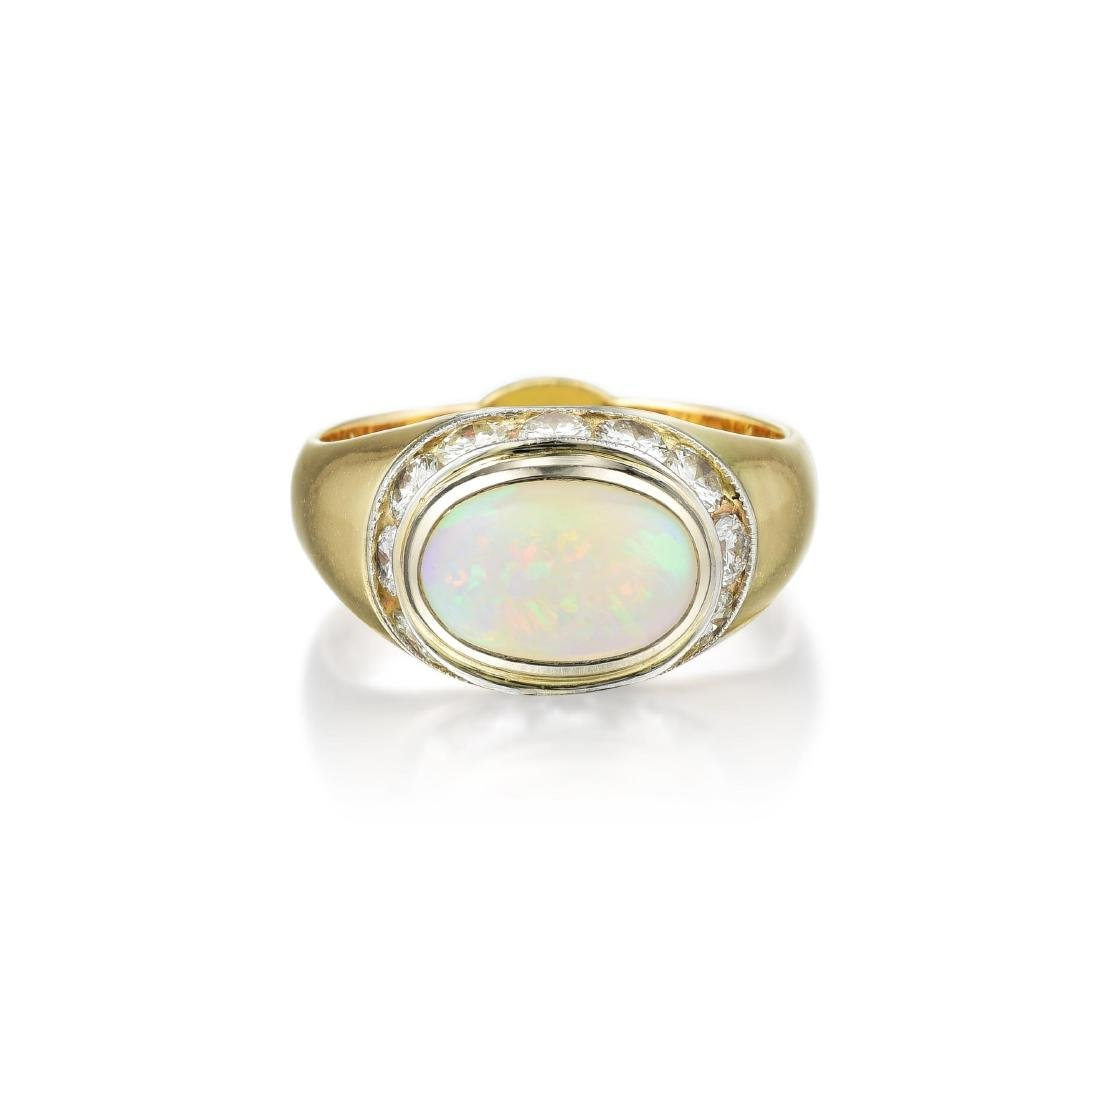 A 14K Gold Opal and Diamond Ring